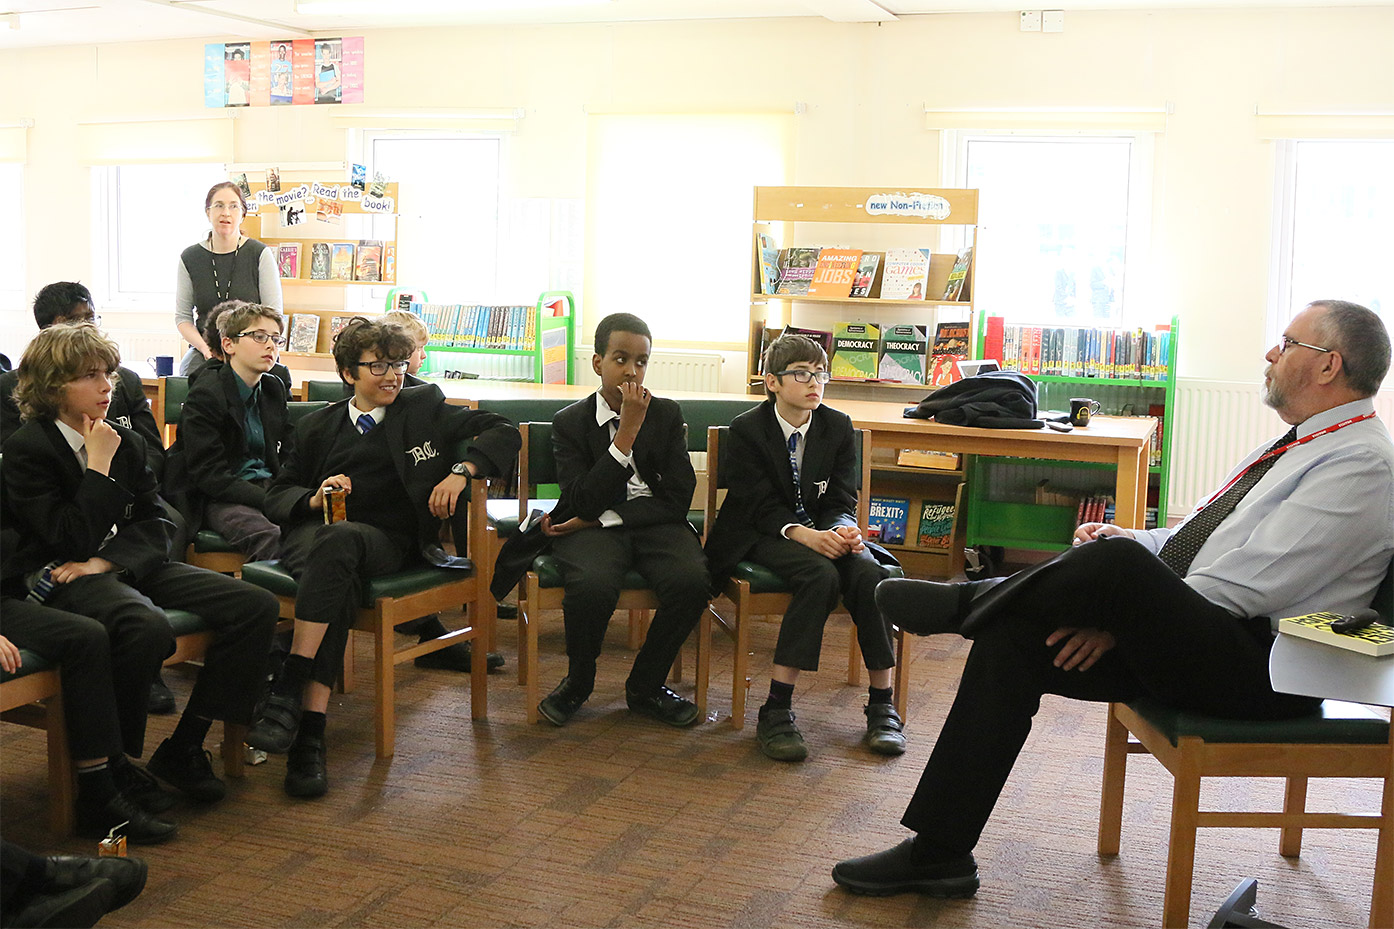 Lower School Lunchtime Author Talk from Alan Gibbons